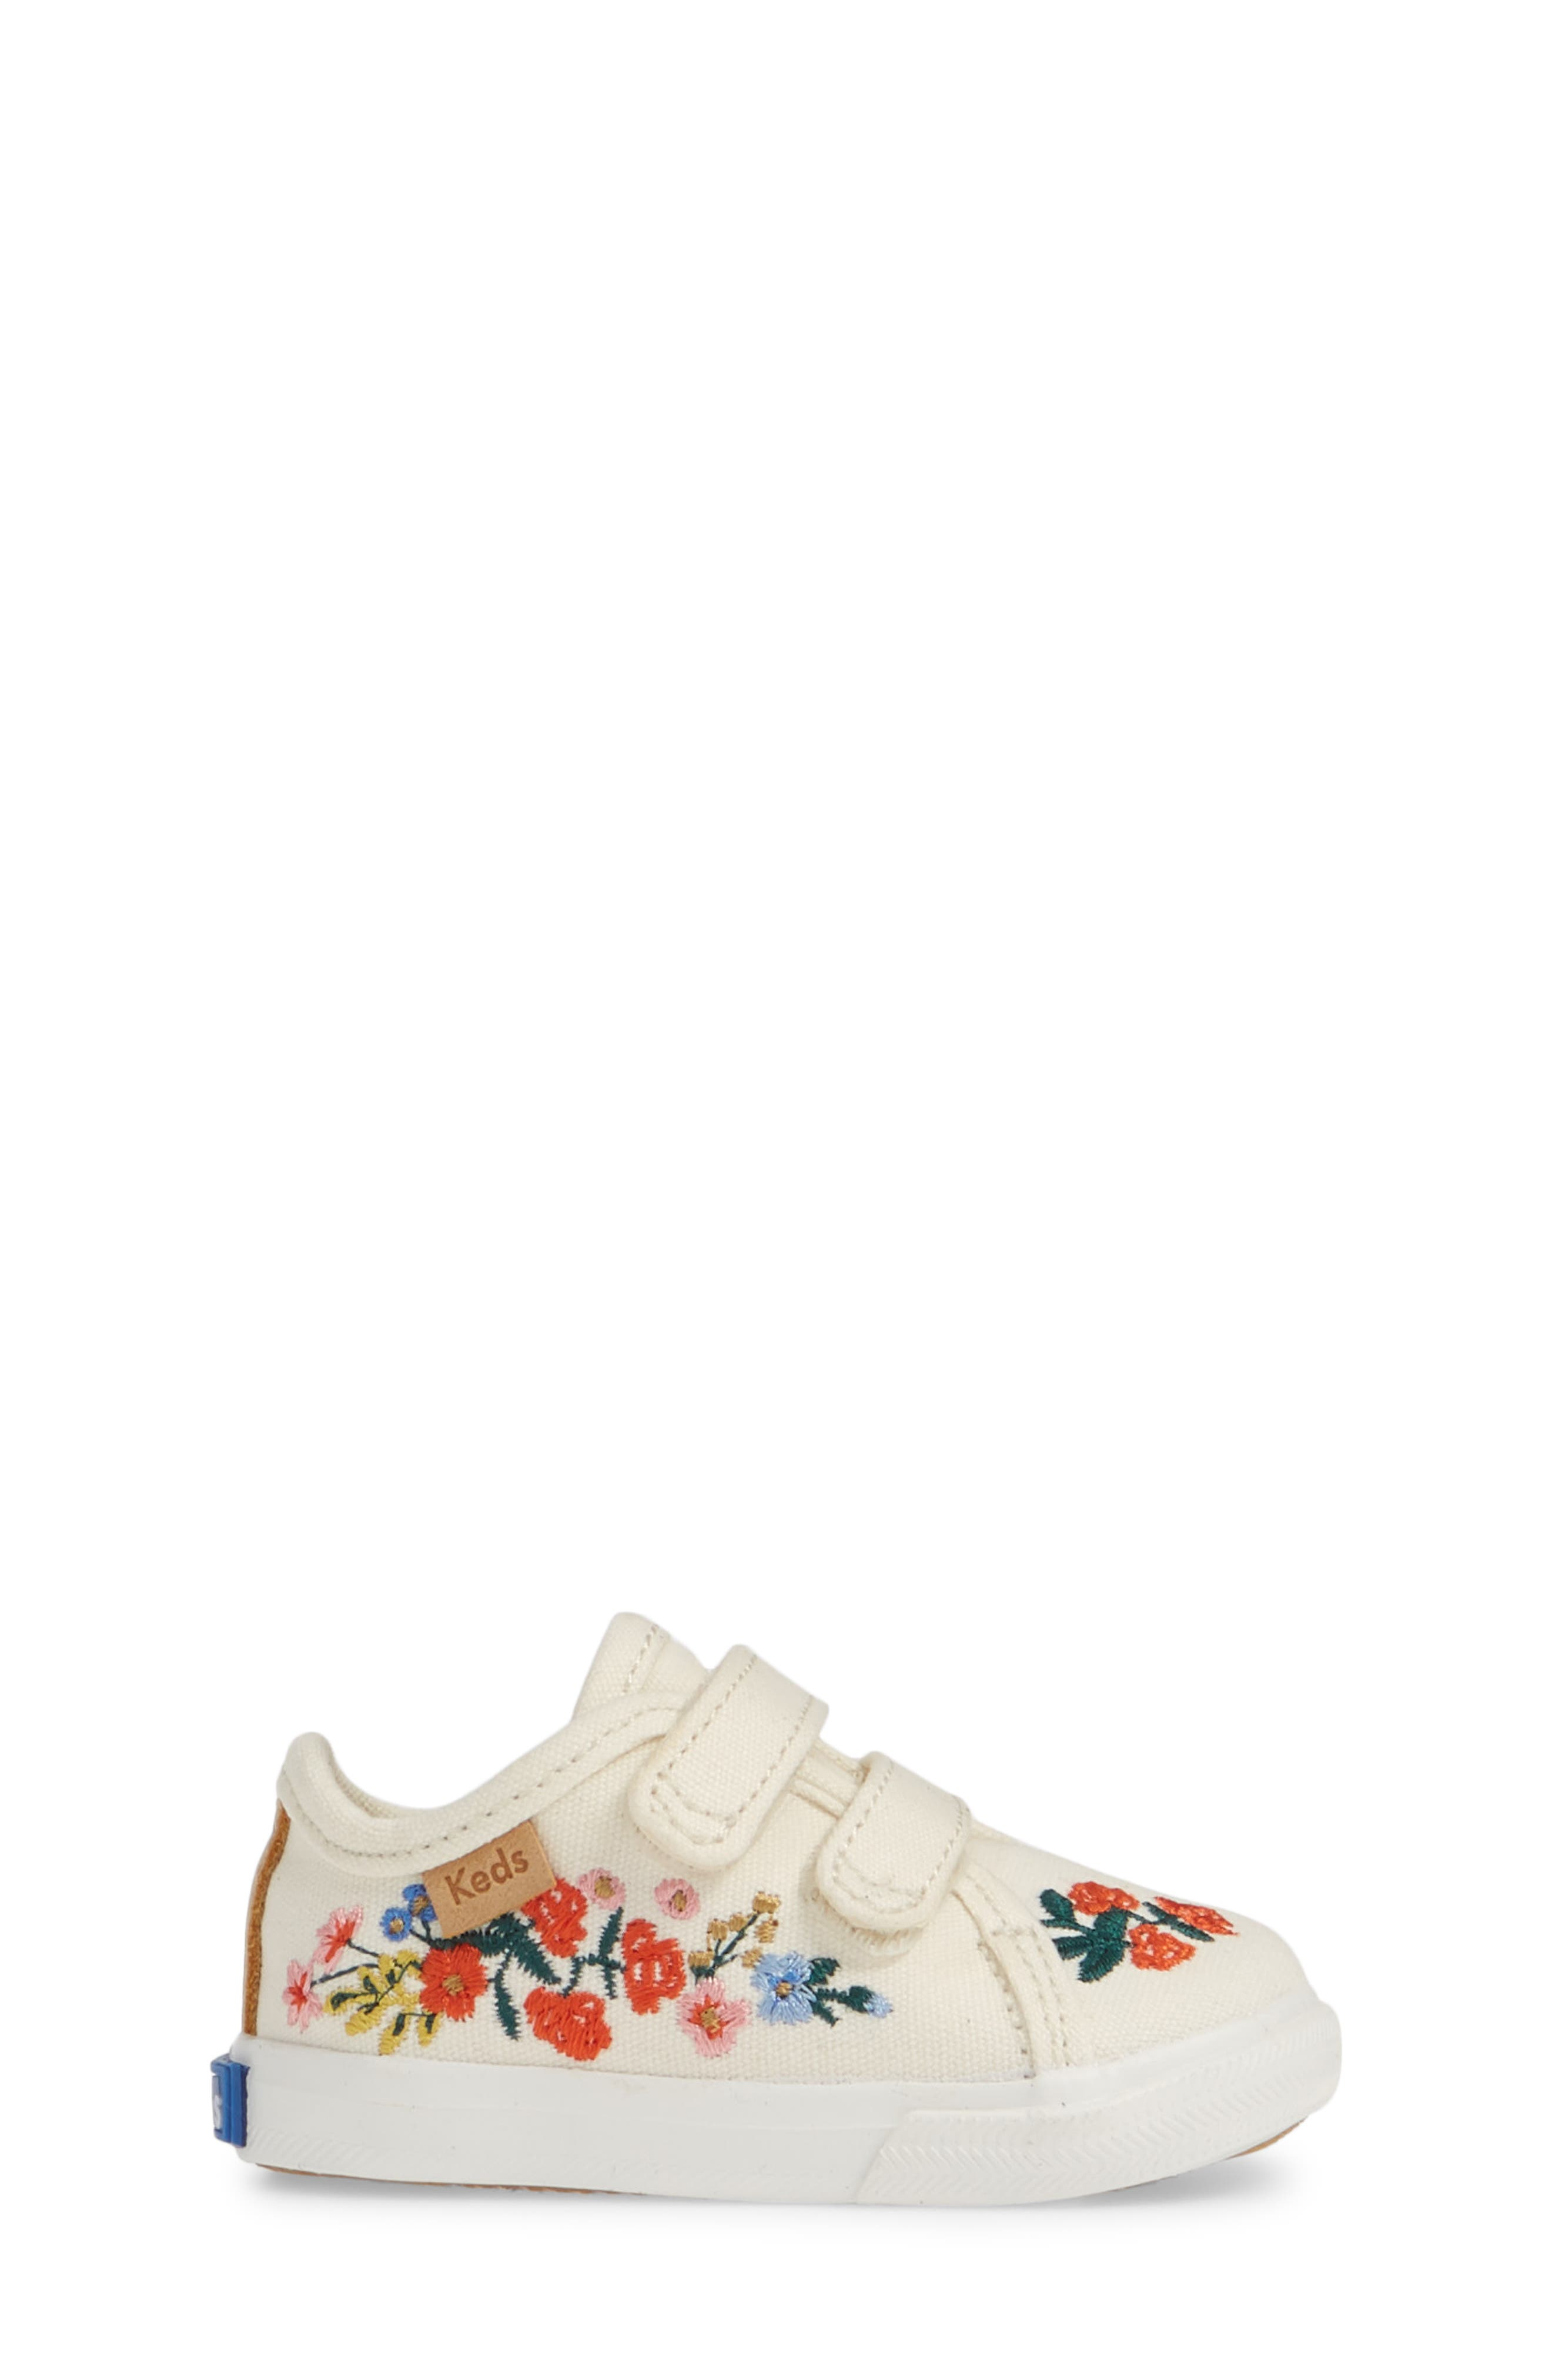 KEDS<SUP>®</SUP>, x Rifle Paper Co. Double Up Crib Shoe, Alternate thumbnail 3, color, VINES